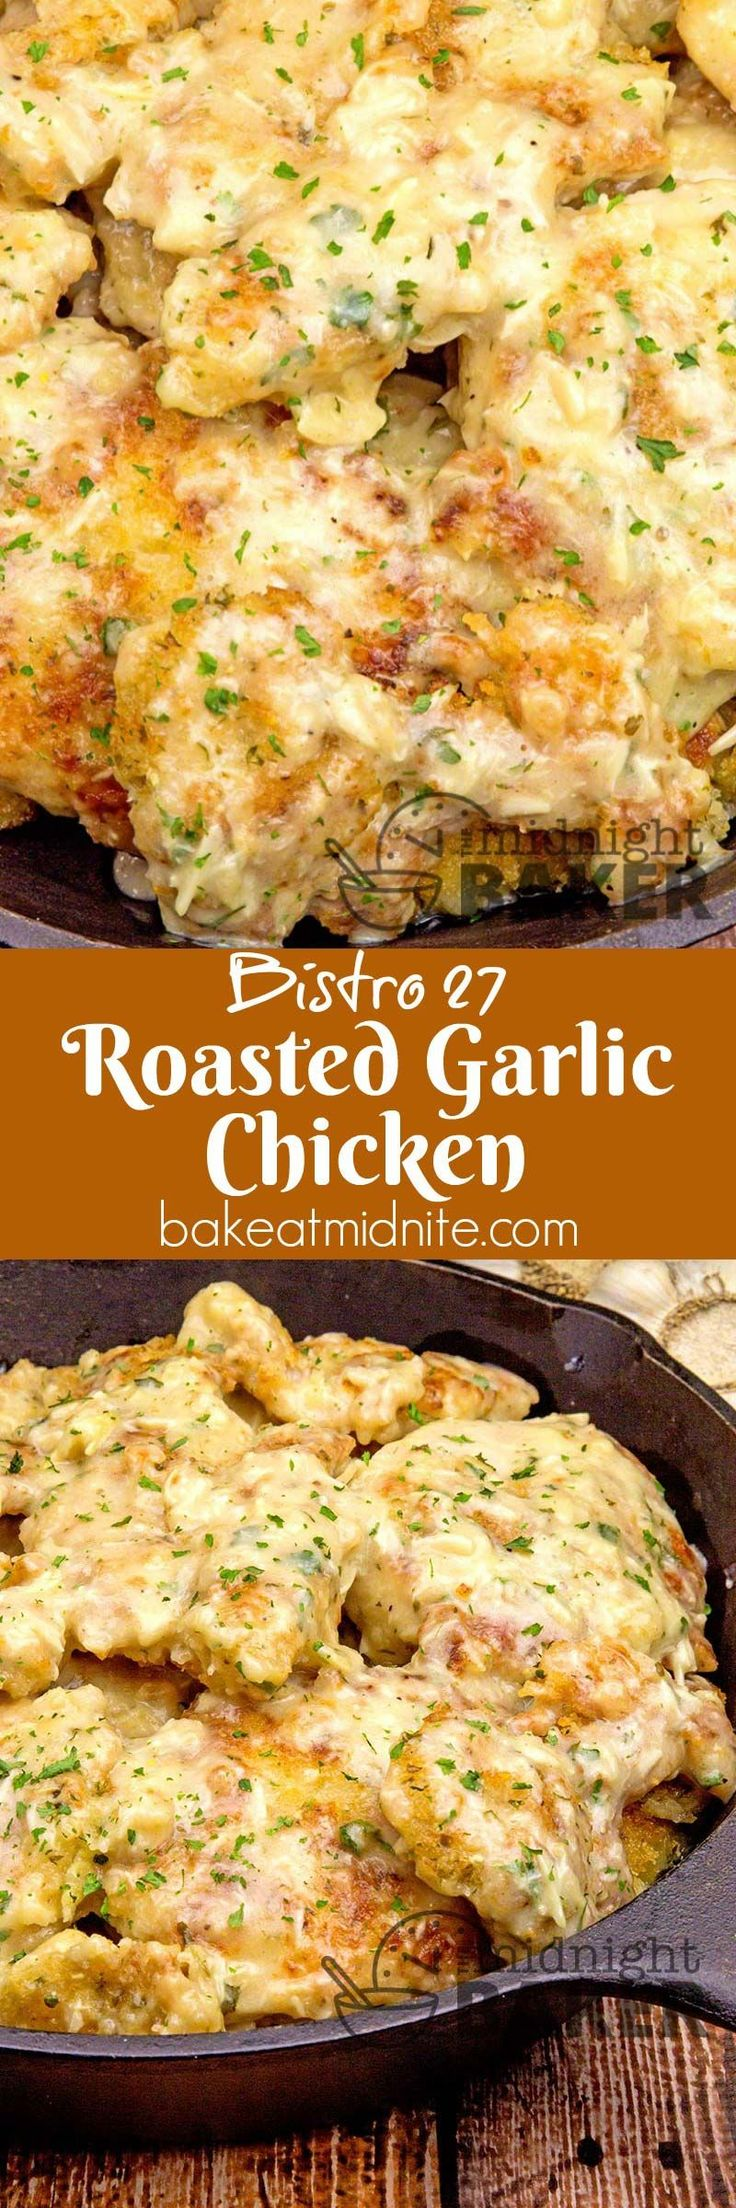 This delicious Parmesan panko crusted chicken in a savory roasted garlic sauce i…